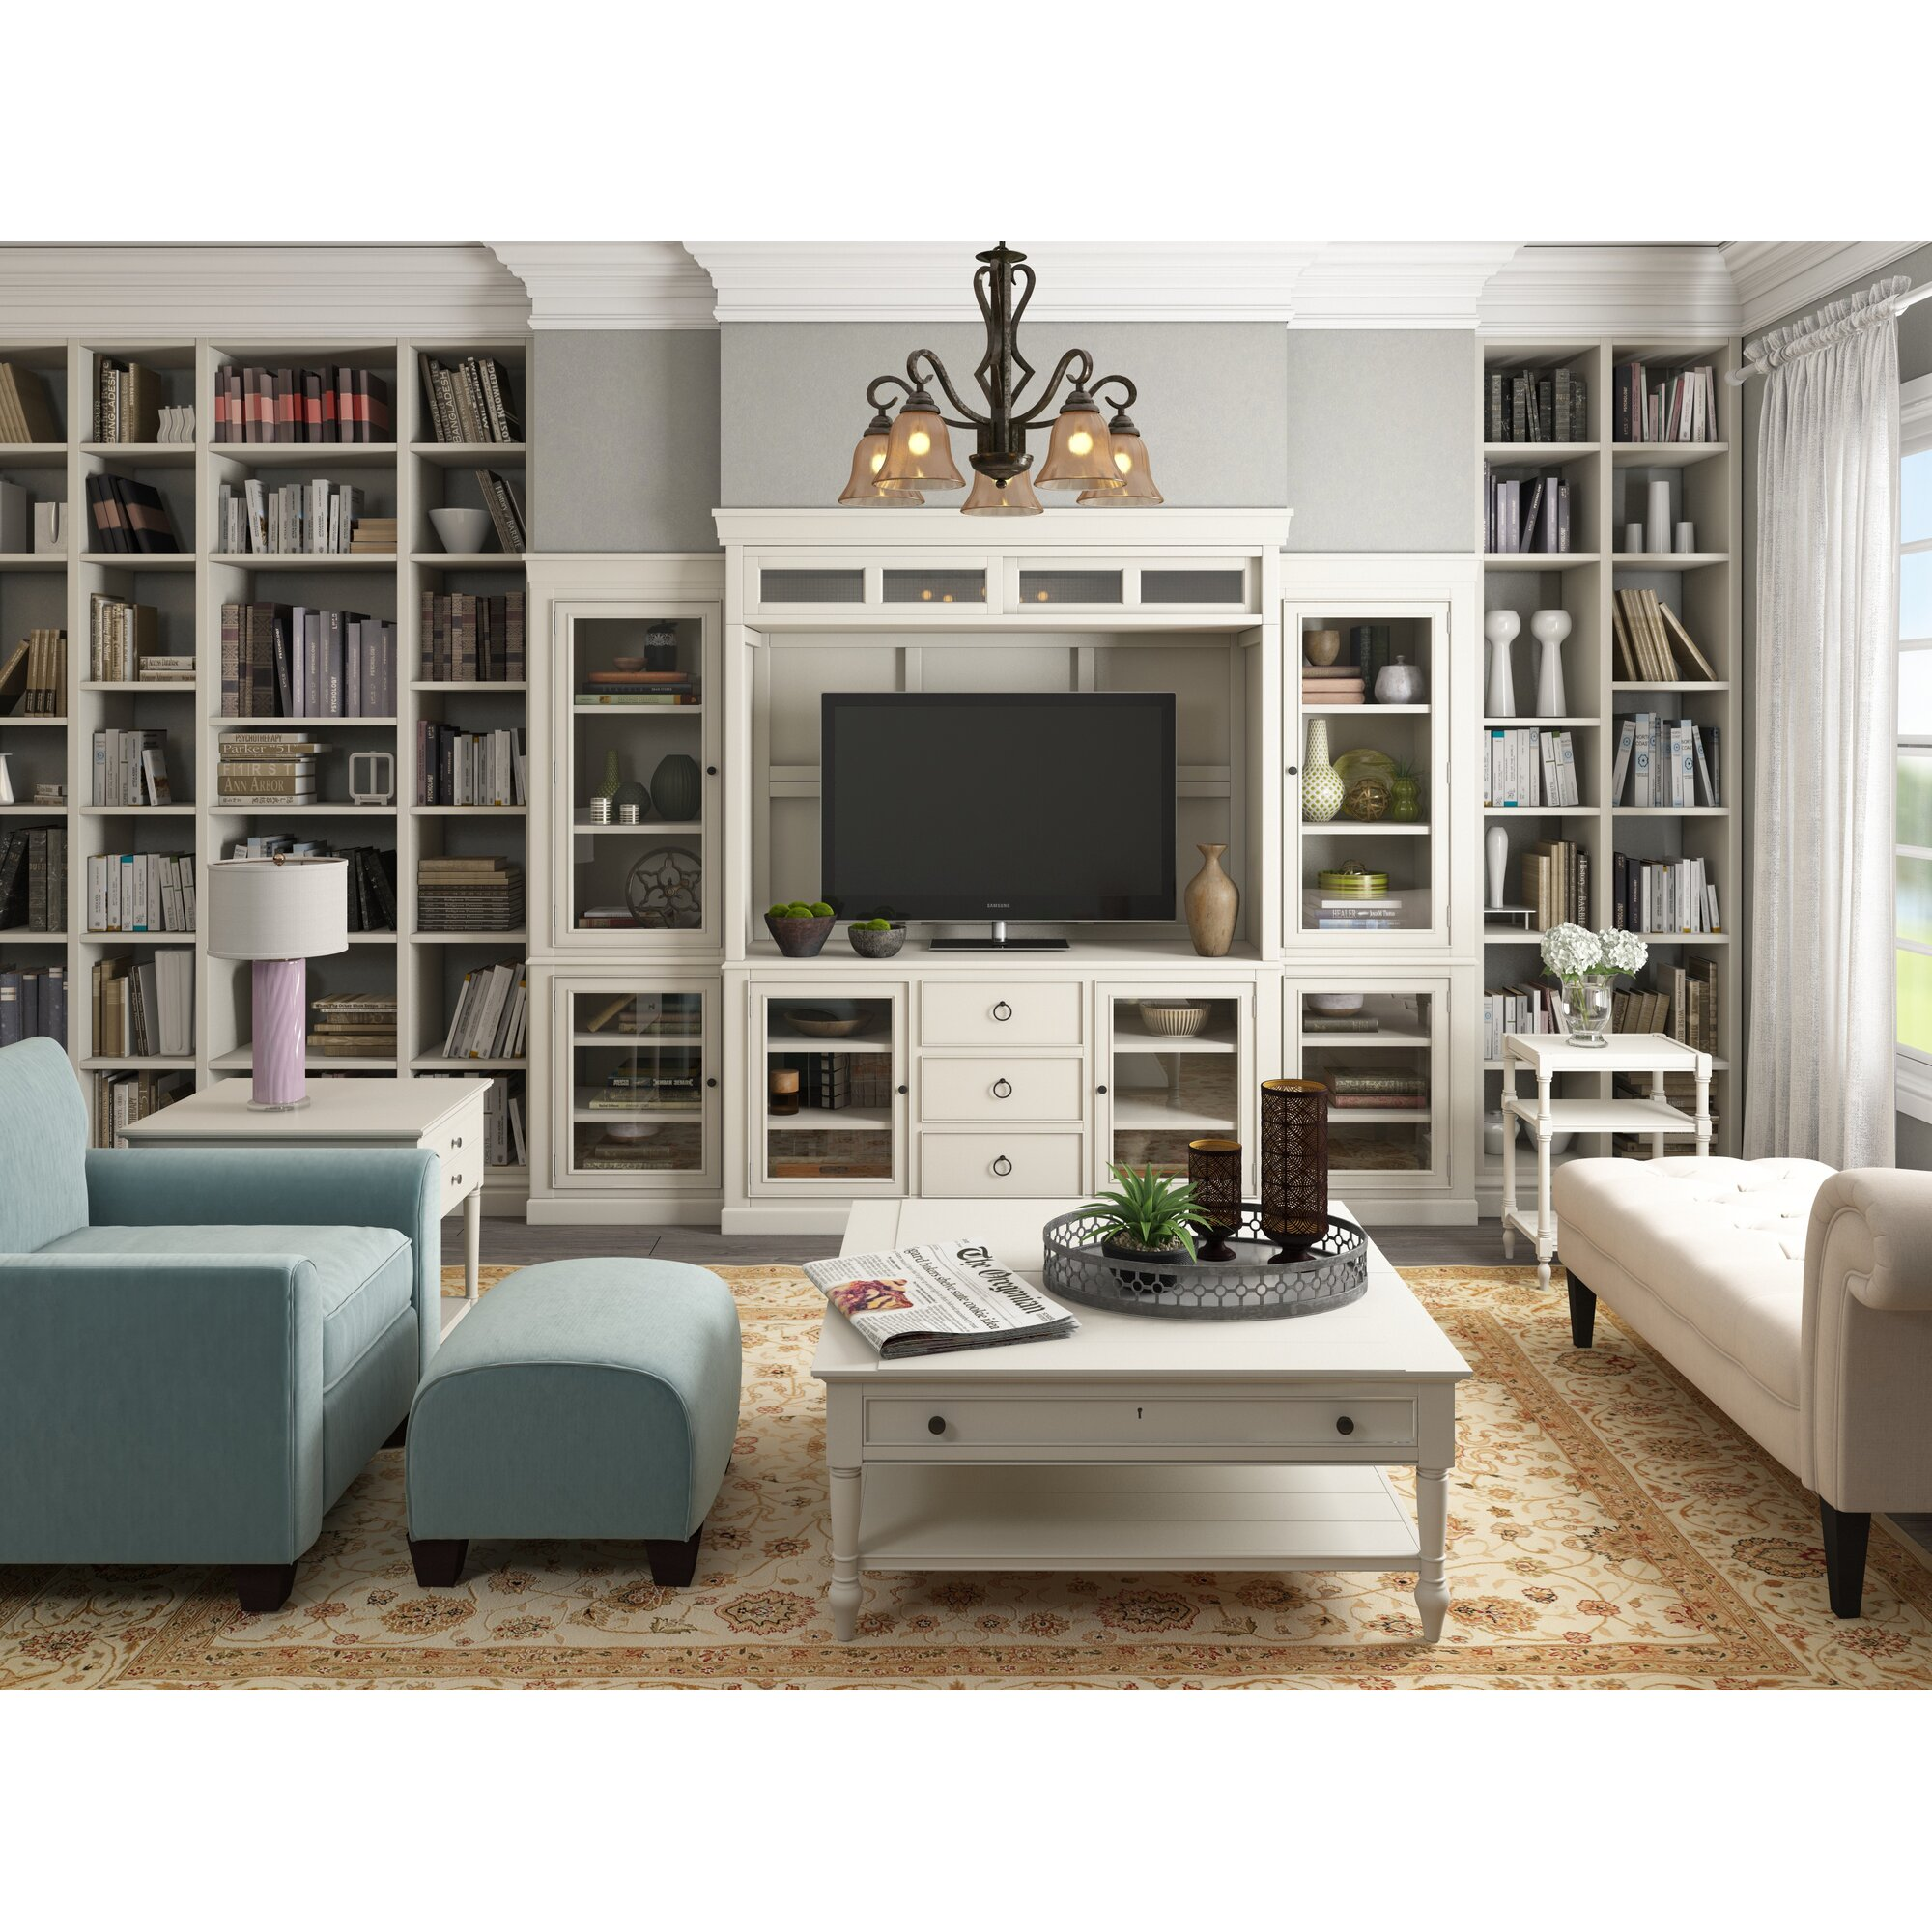 Joss And Main Lift Top Coffee Table: Courtney Lift-Top Coffee Table & Reviews